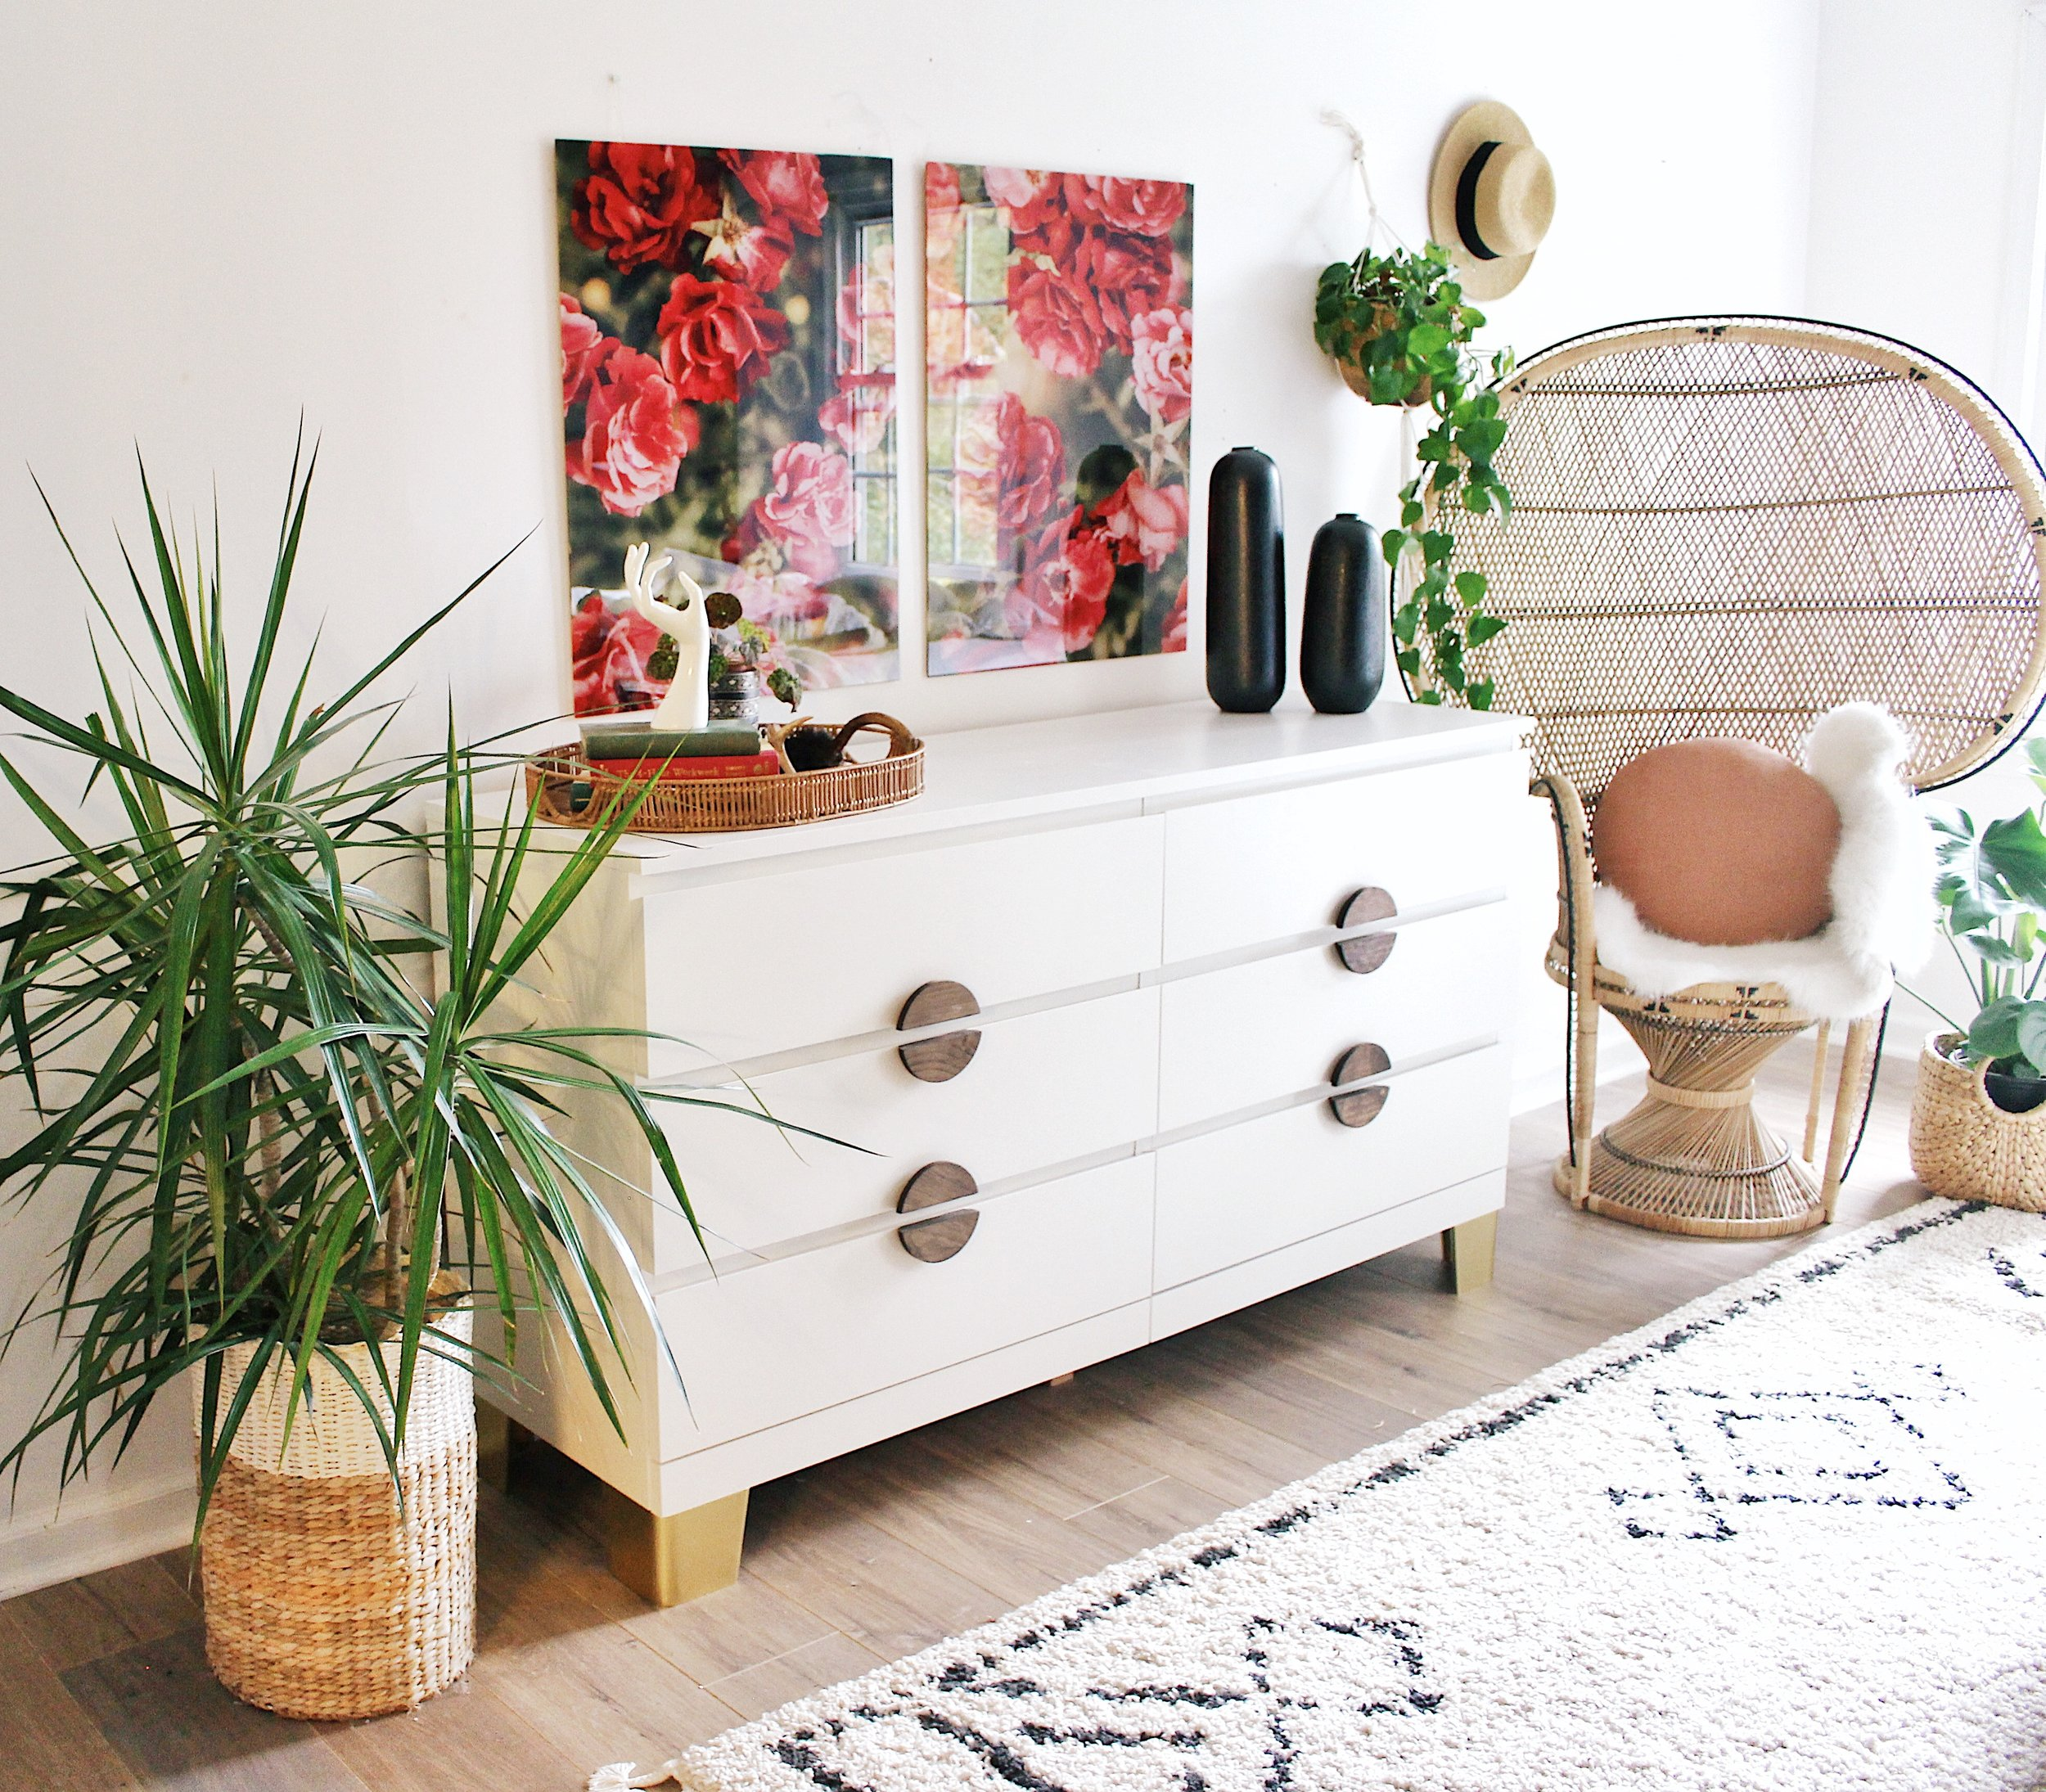 - How to dress up an IKEA dresser.